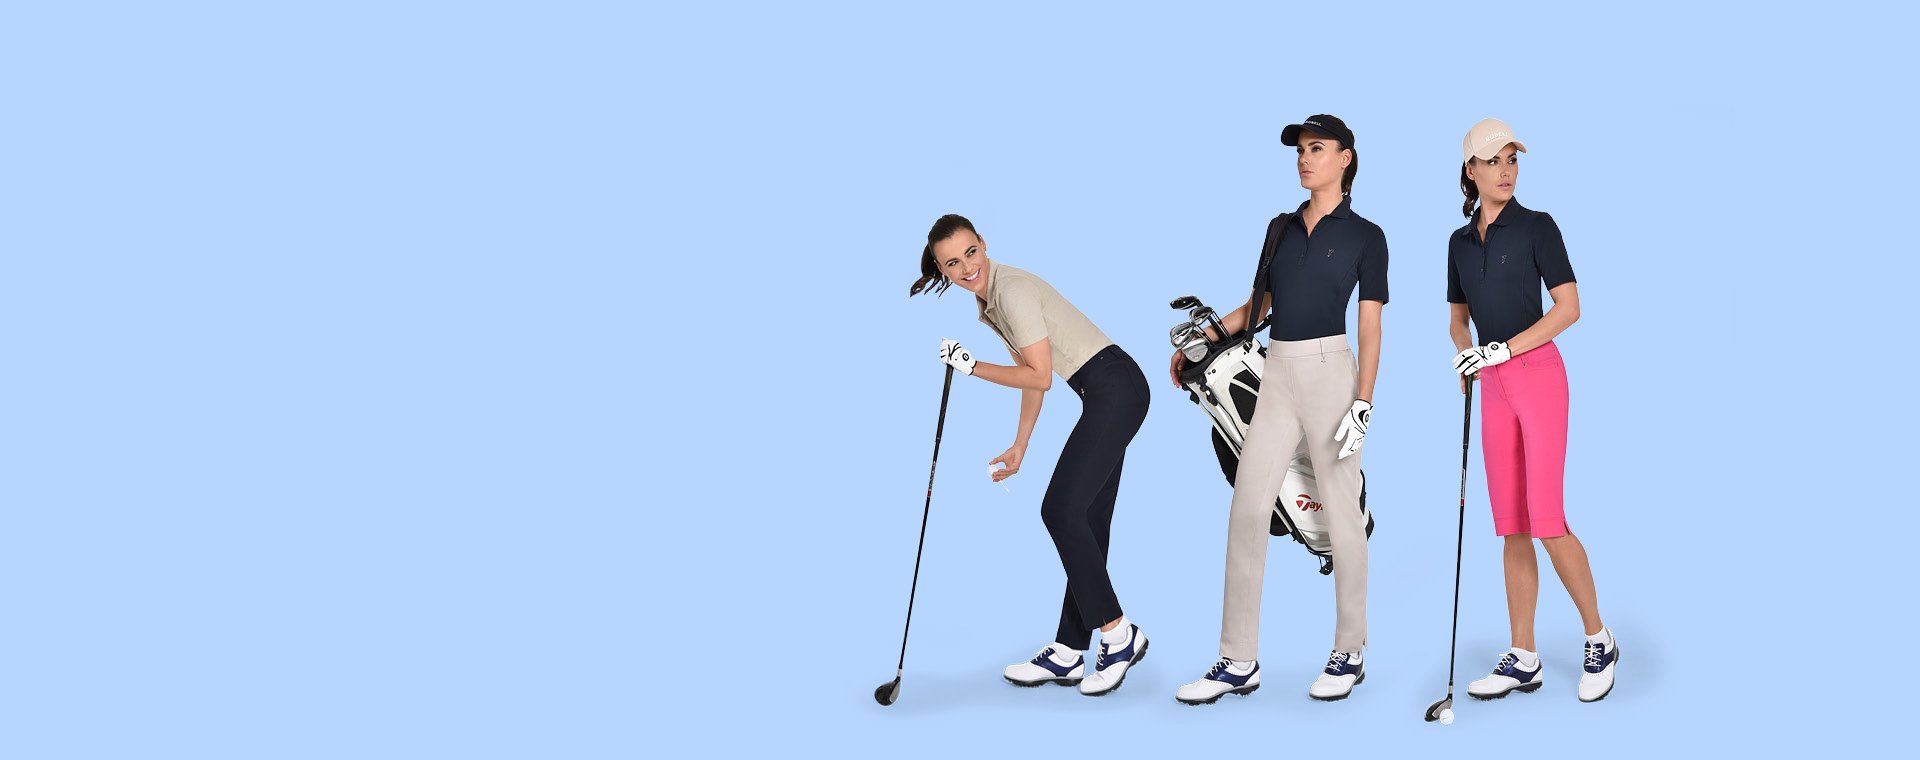 TROUSERS FOR THE LADY GOLFER